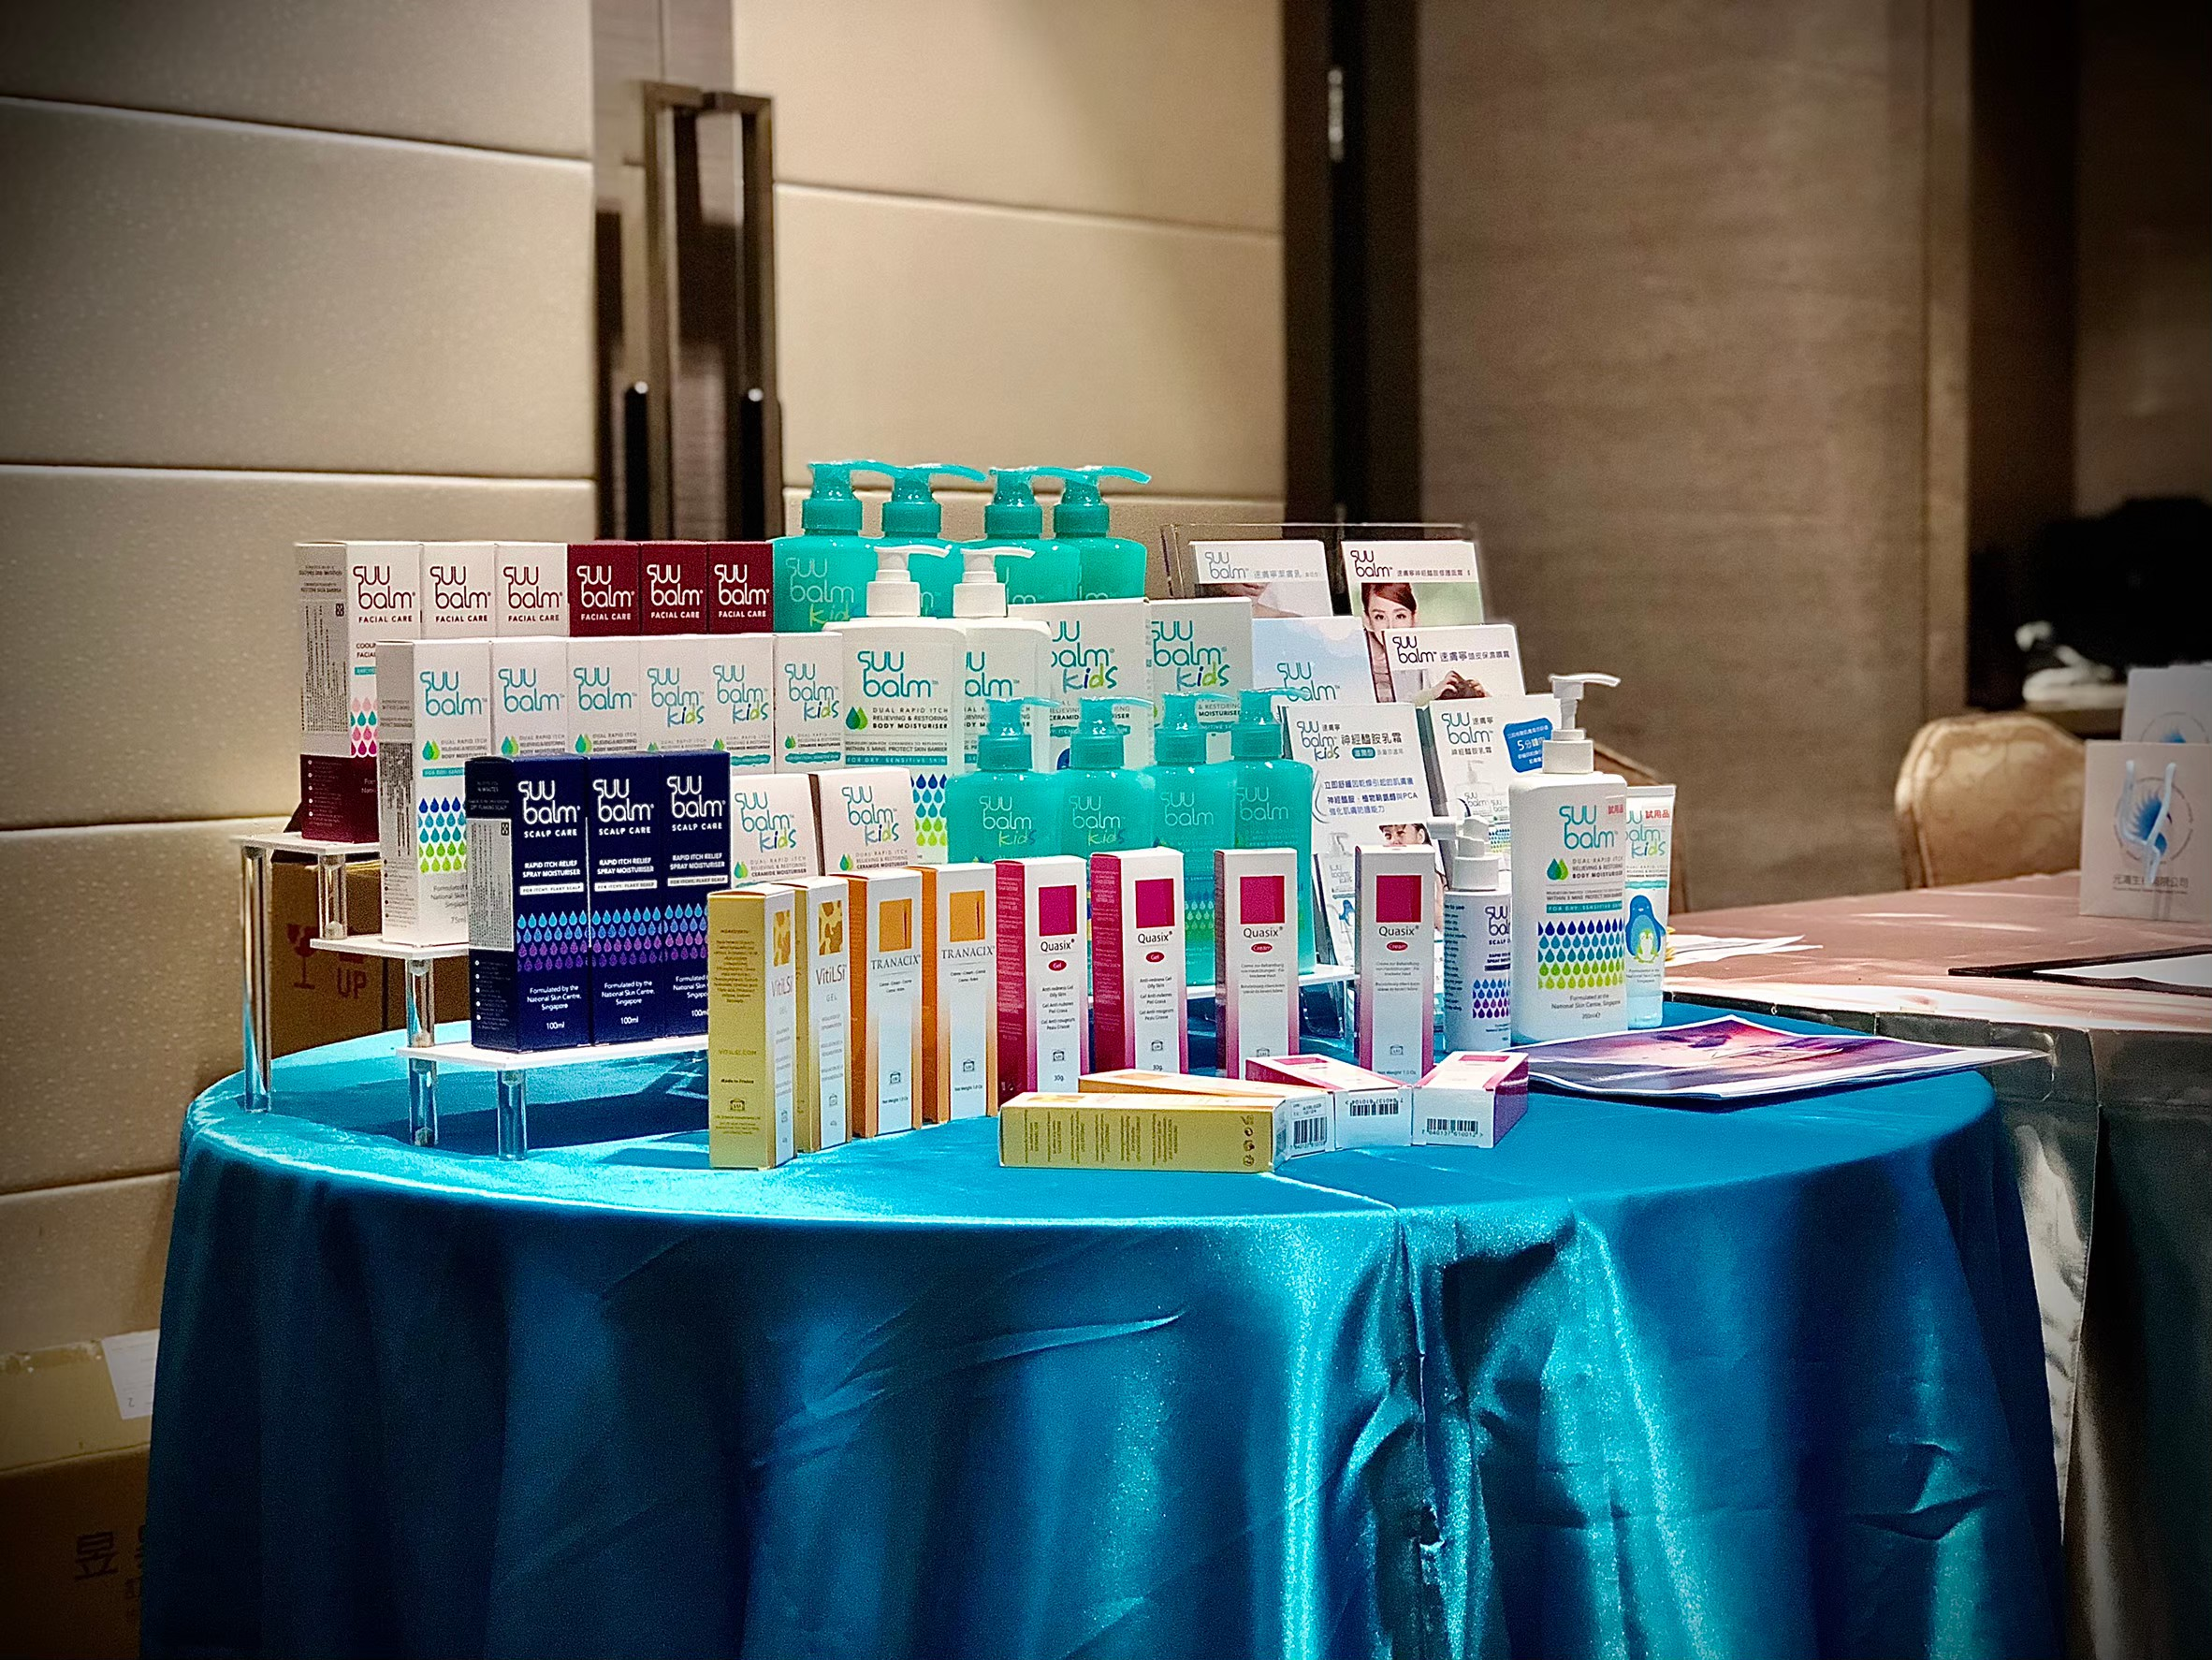 Over 130 Dermatologists attended our New Era of Atopic Dermatitis Treatment Symposium in Taichung city on July 5th, 2020